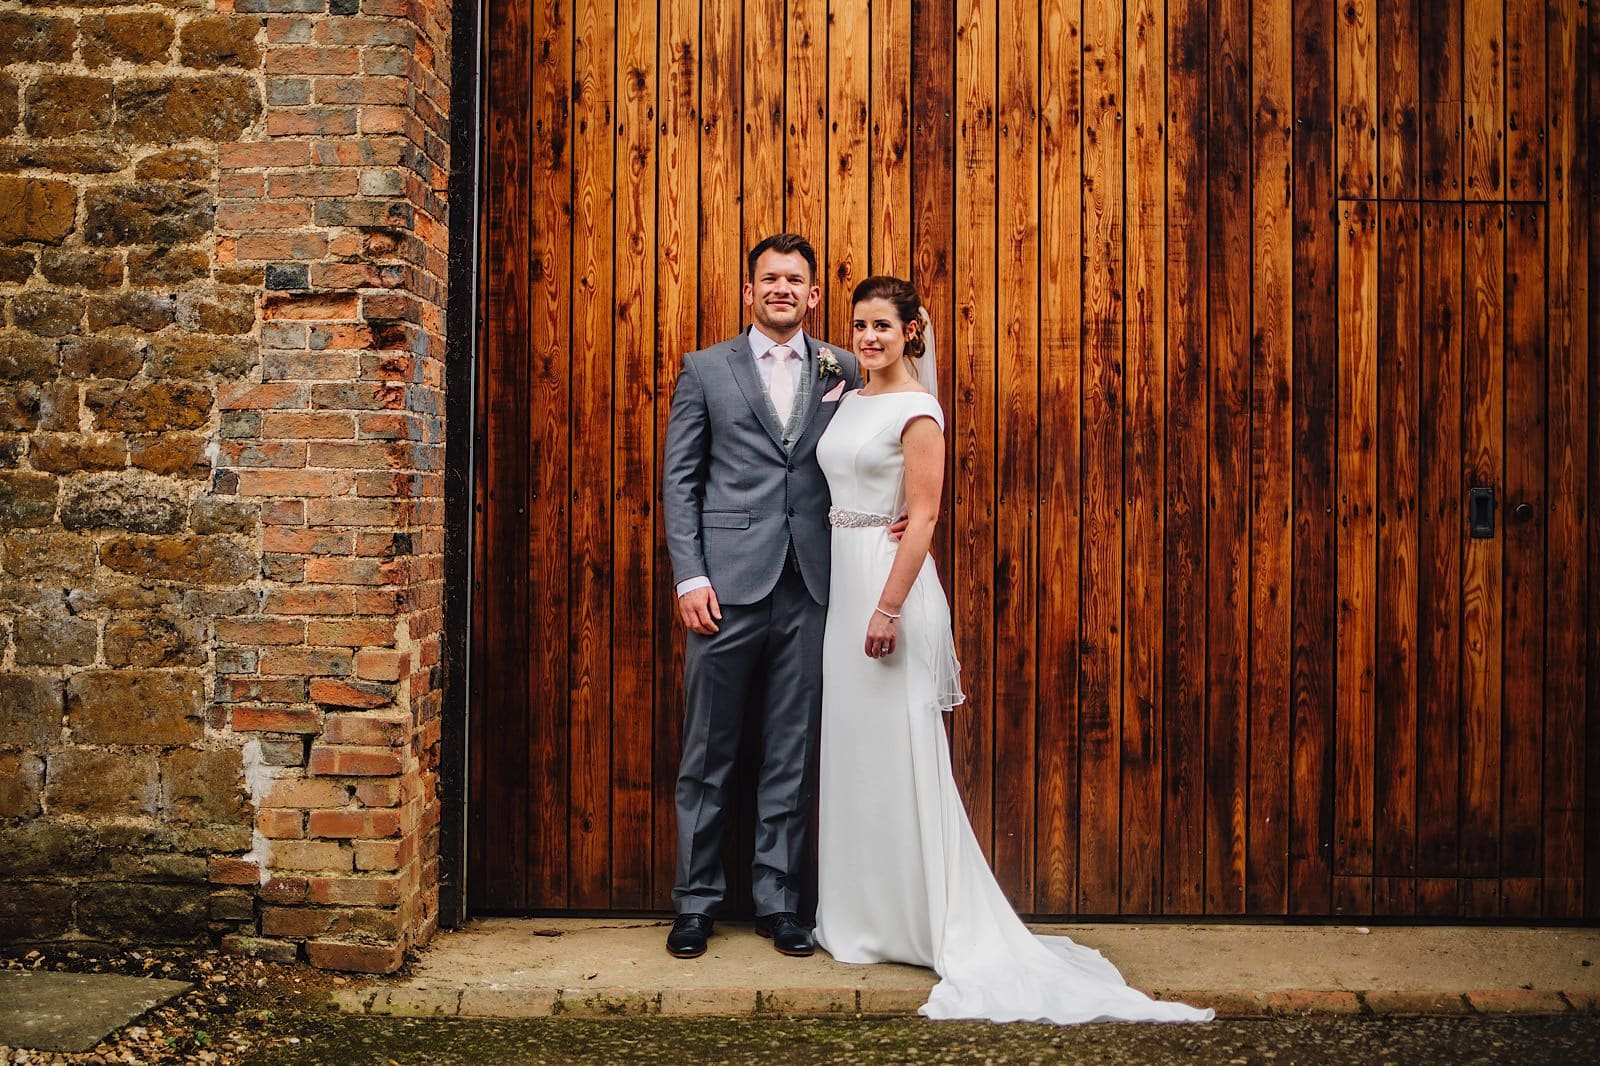 Dovecote barn adderbury wedding photography 074